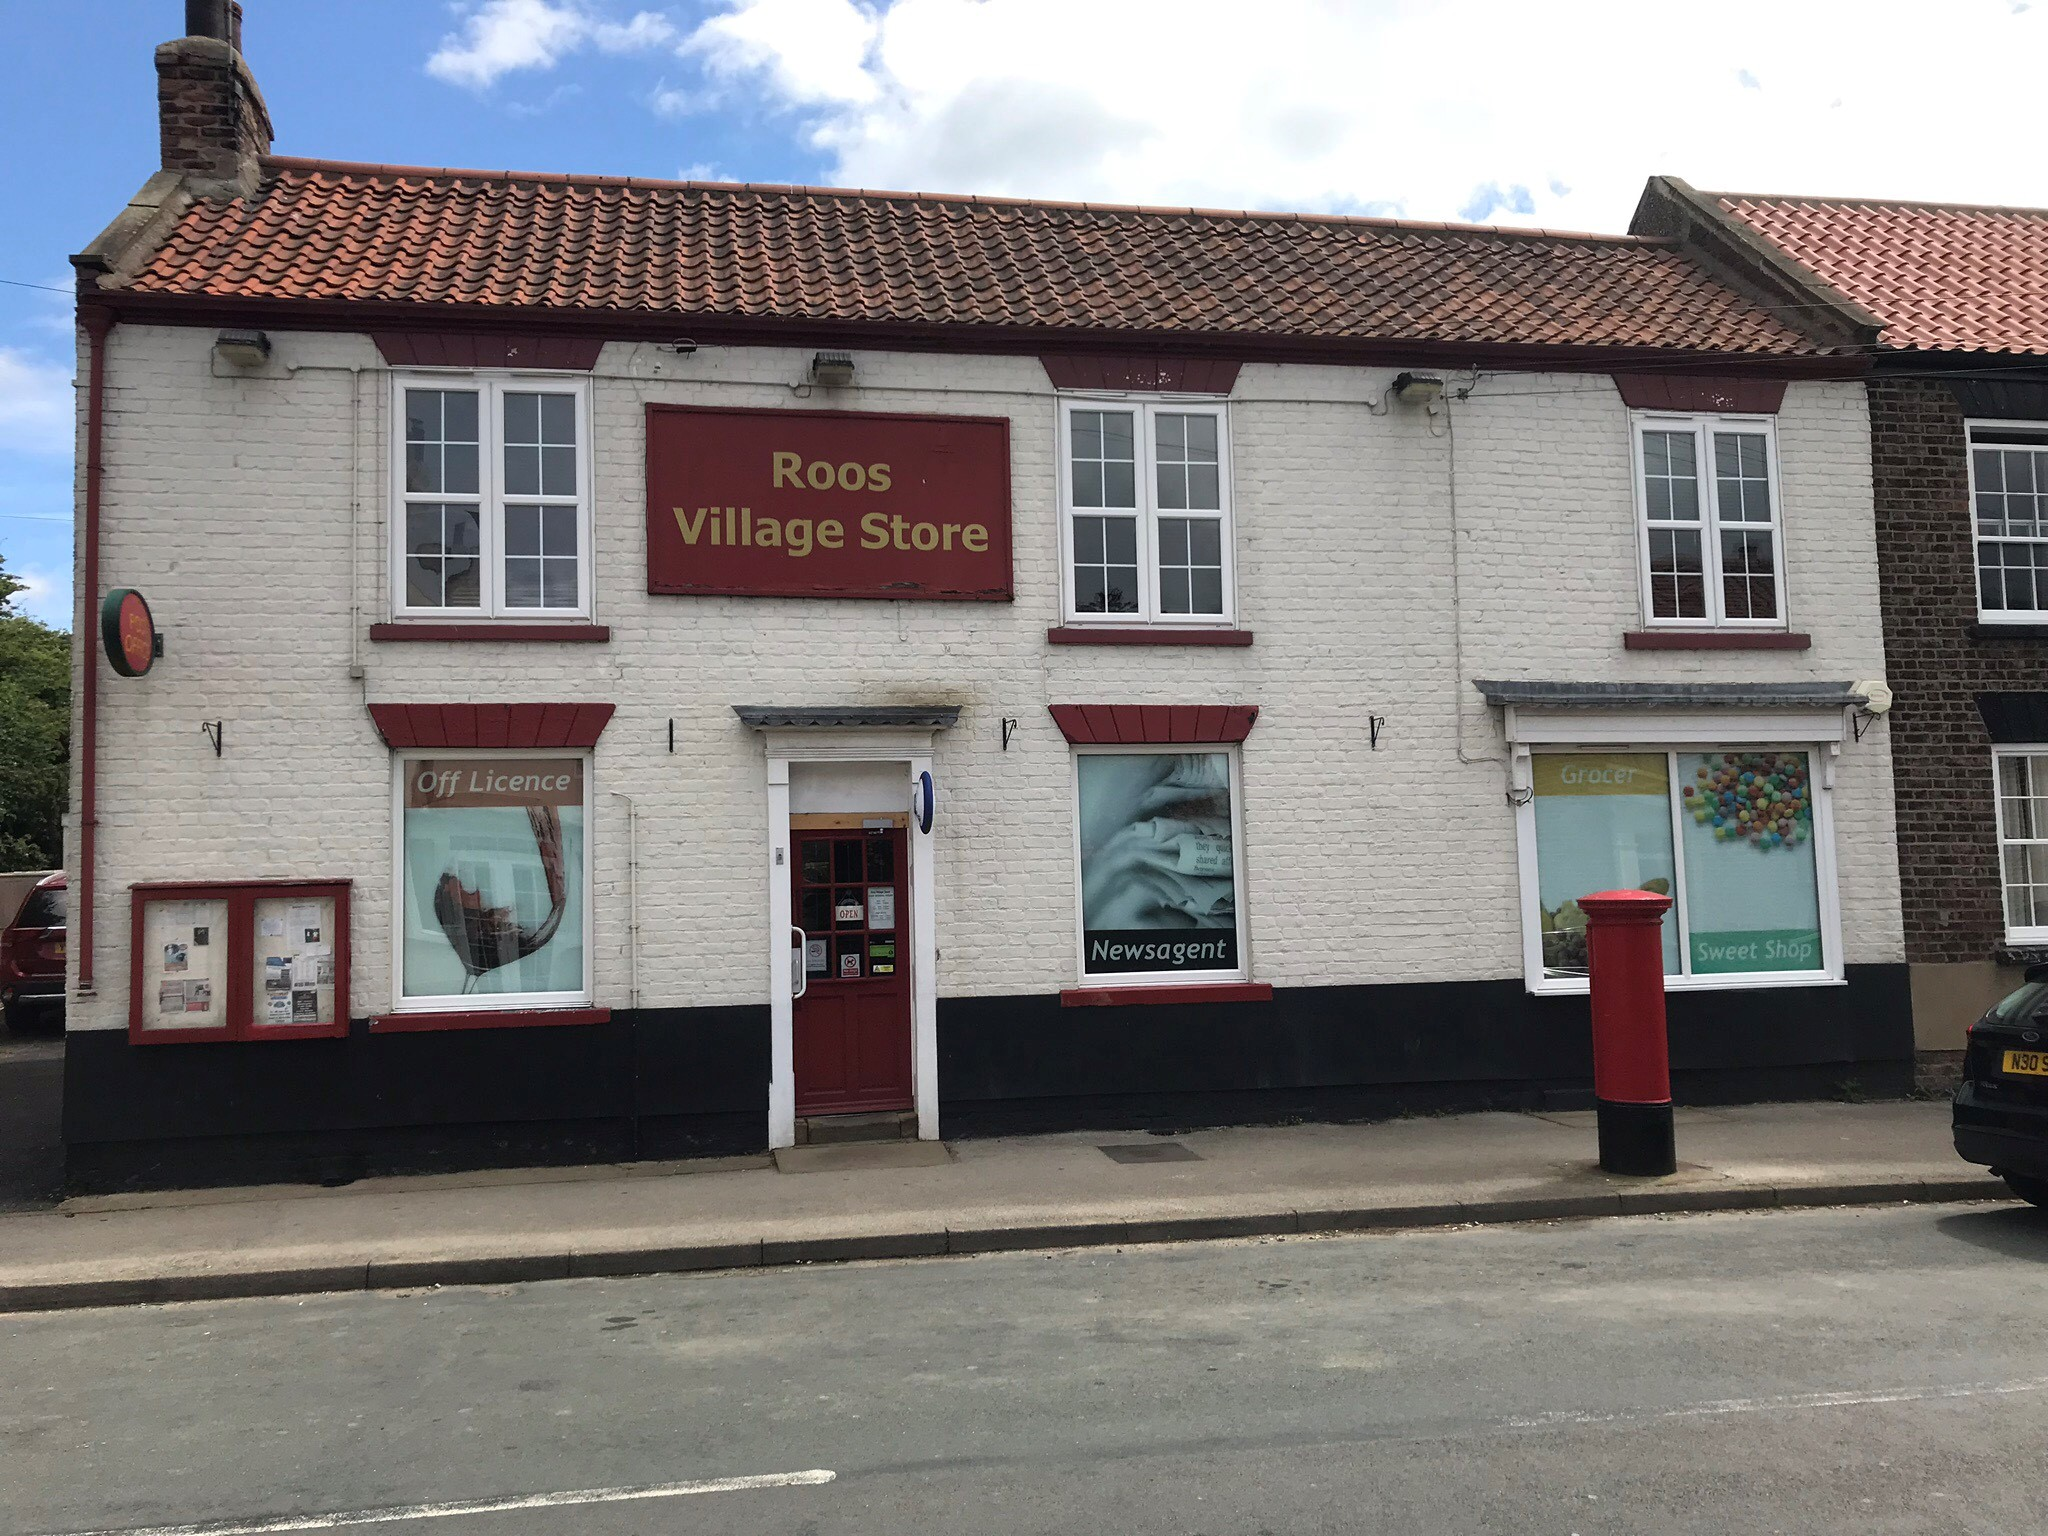 Village Store for sale with 3/4 bed family residence